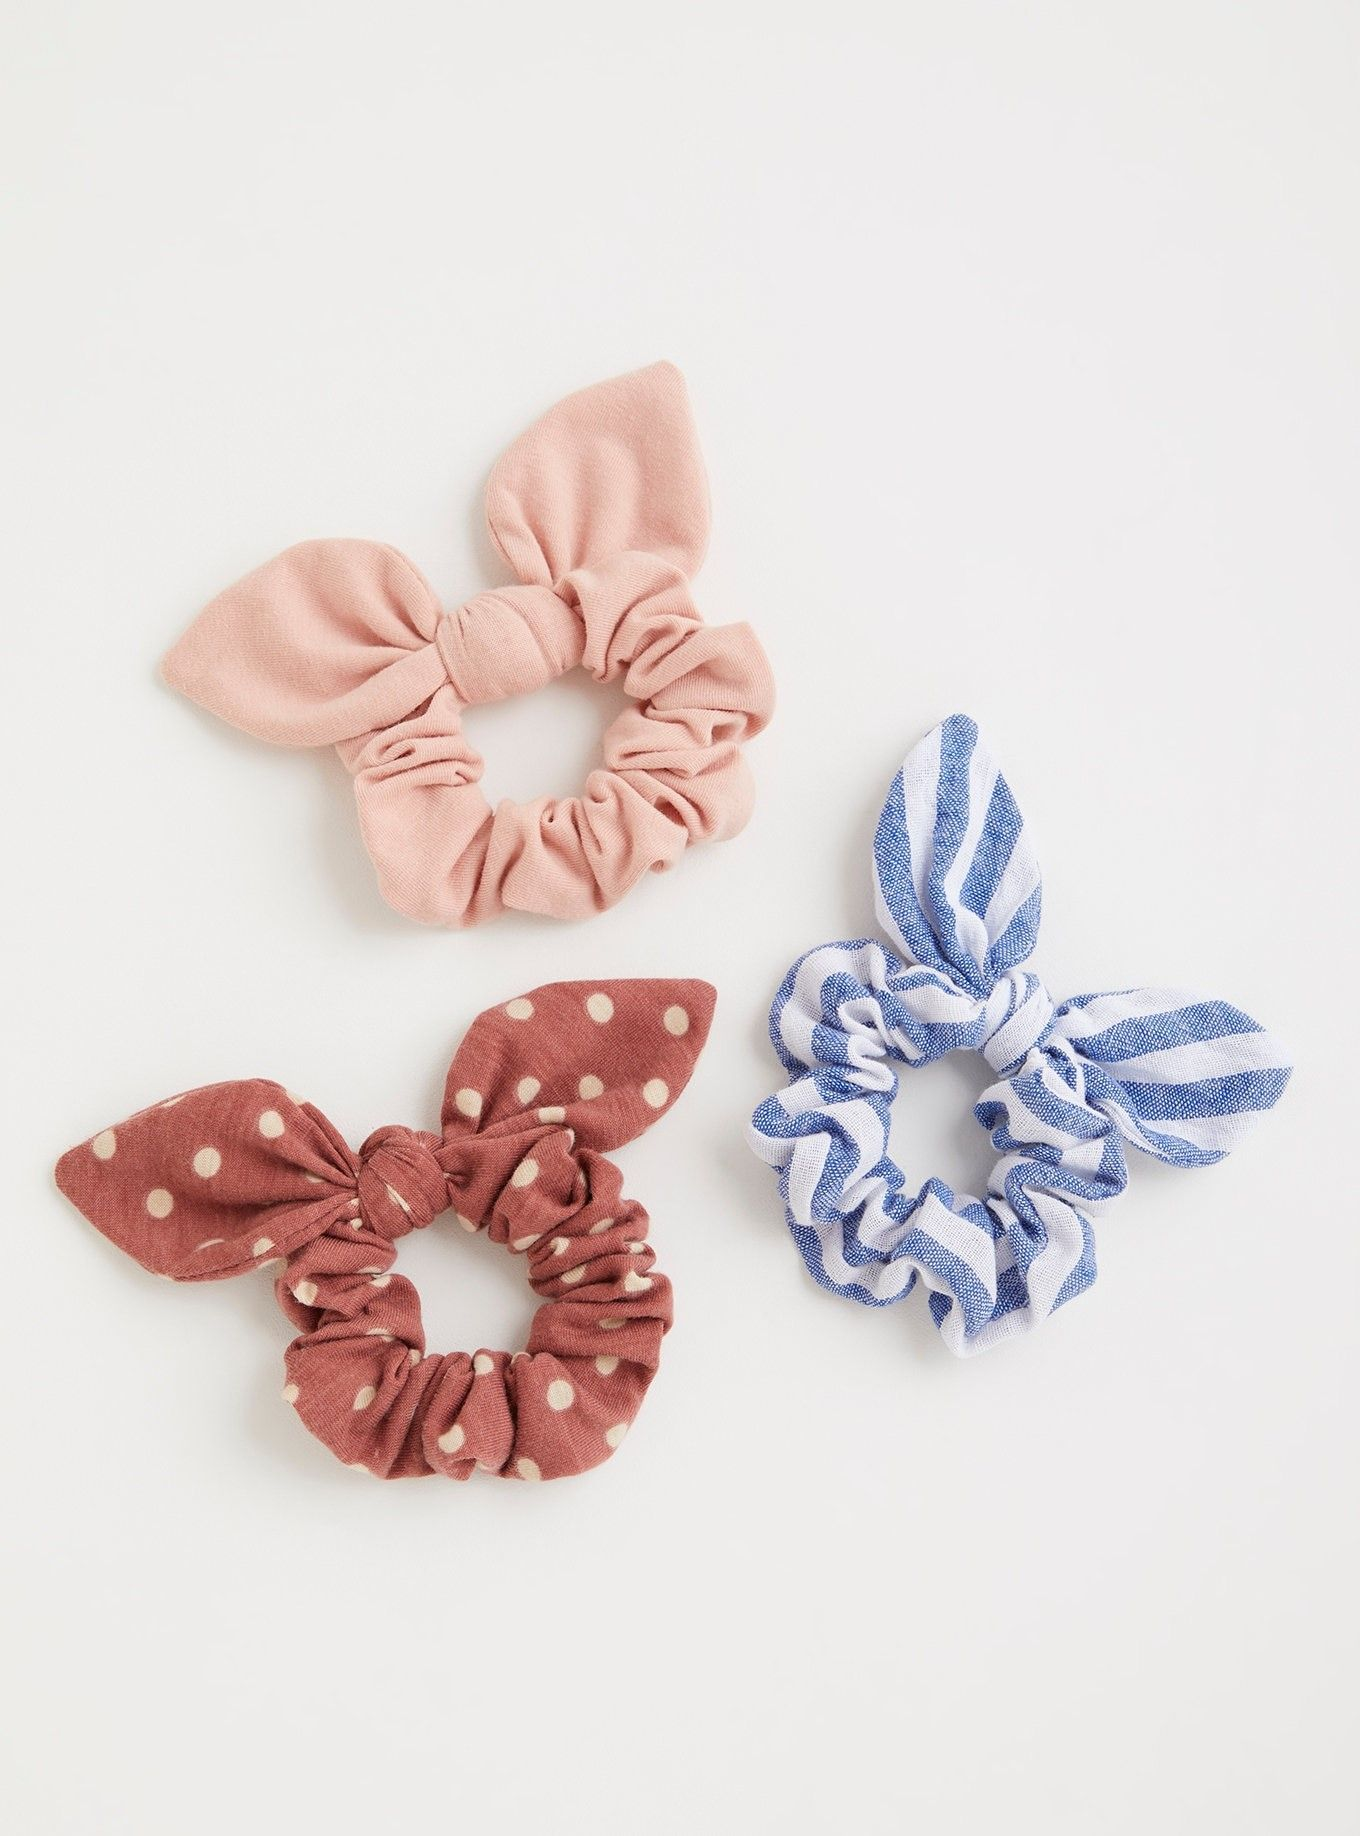 Apparel Accessories Girl's Accessories New Fashion Women Girls Colorful Printing Rubber Band Cute Rabbit Ears Bowknot Polka Dot Leopard Floral Hair Rope Ponytail Holder Scrunchies Latest Technology